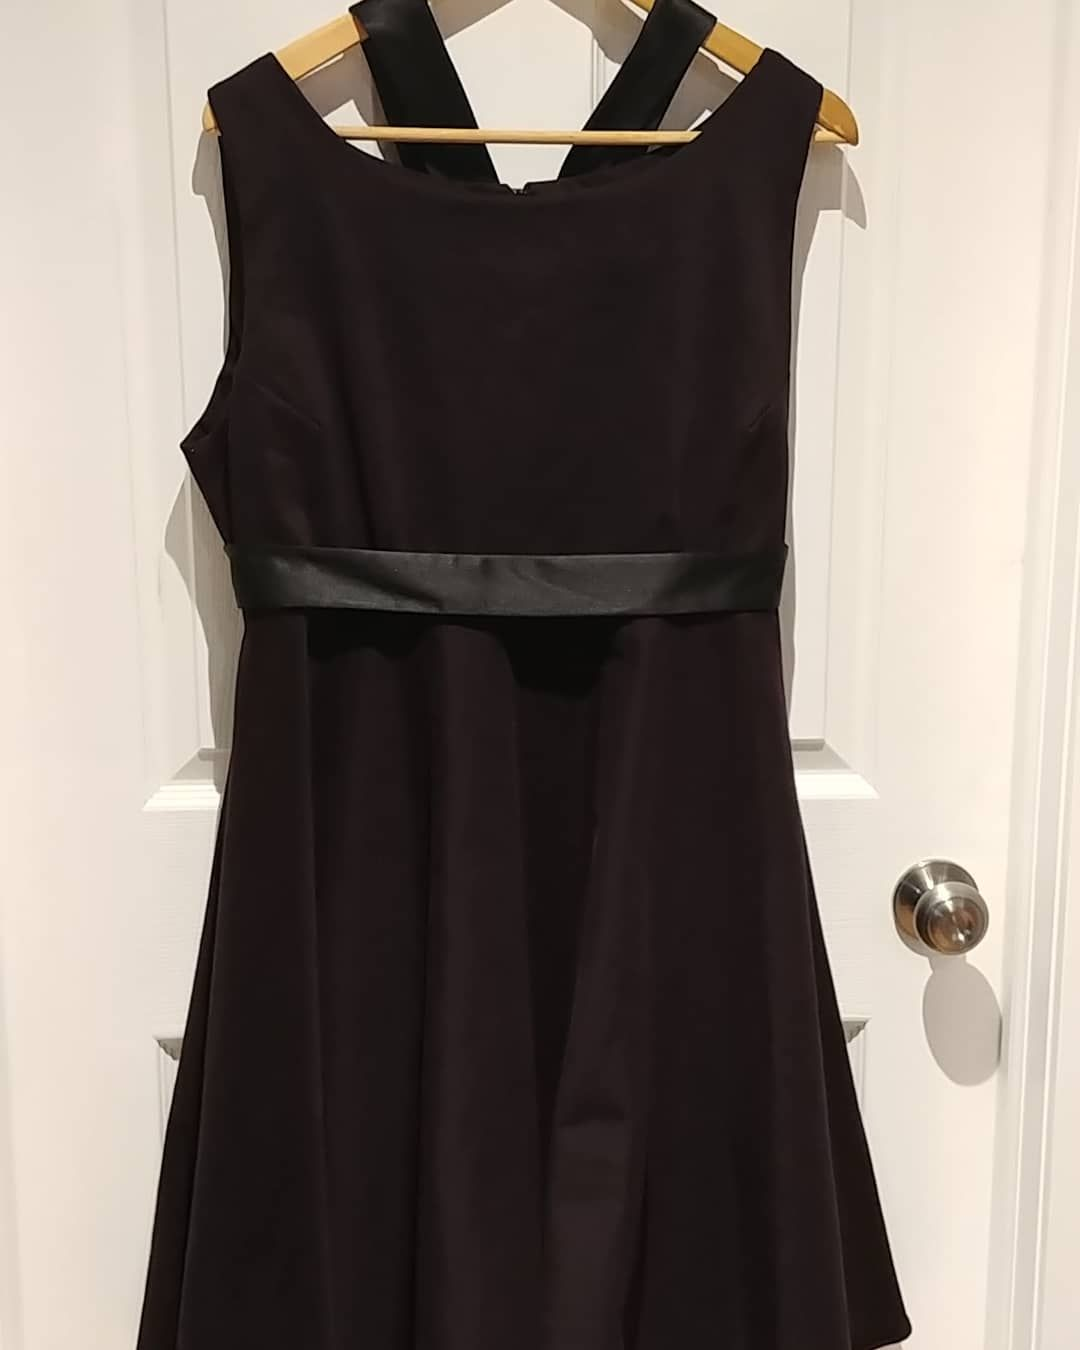 Vintage Cotton Stretch Dress In Dark Purple Made And Designed In London Ontario Canada The Dress Was For A Guest A Stretch Dress Vintage Outfits A Line Dress